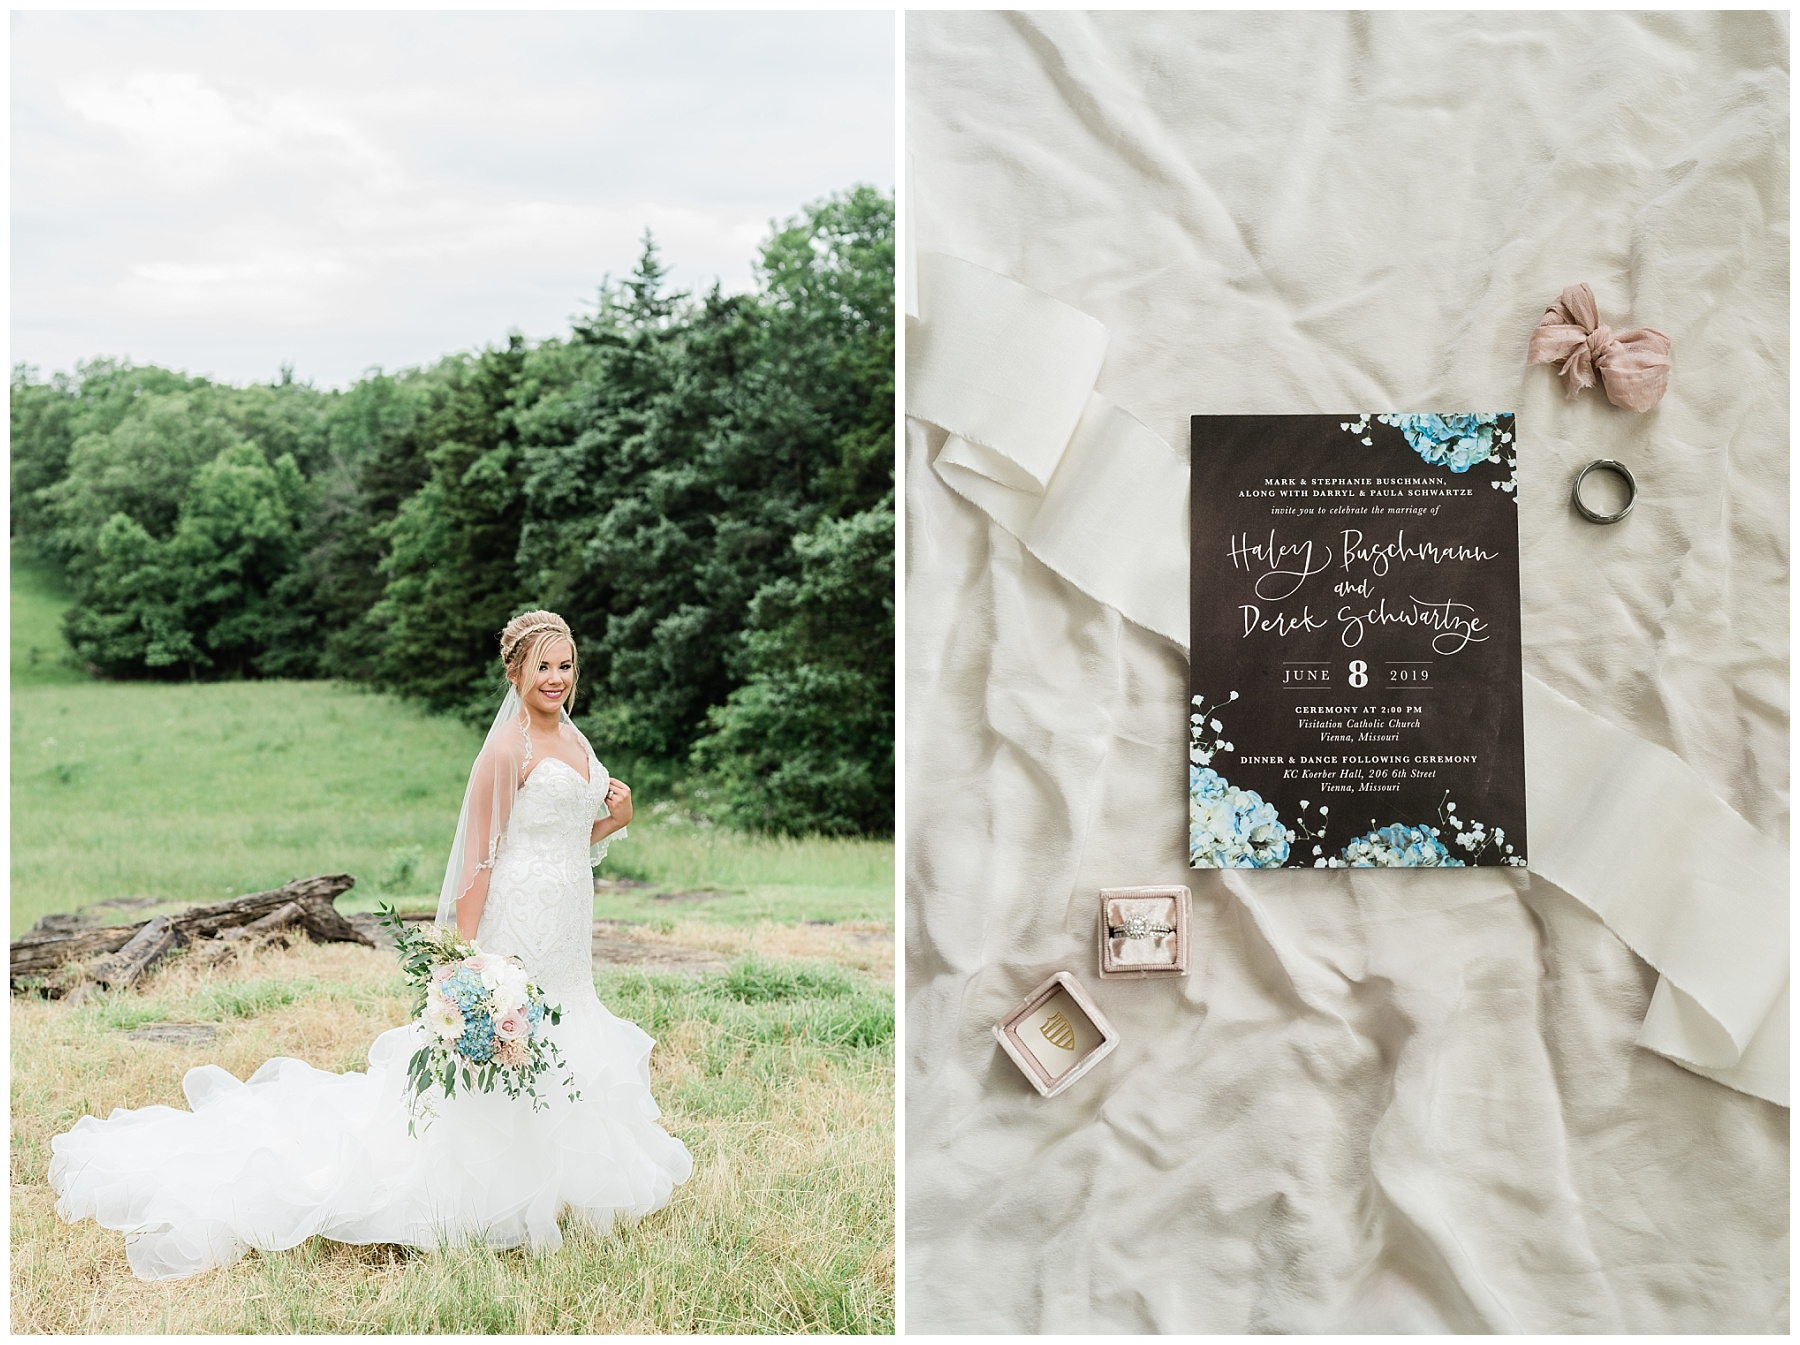 Sky Blue and Quartz Spring Wedding at Open Fields of Family Farm by Kelsi Kliethermes Photography Best Missouri and Maui Wedding Photographer_0033.jpg